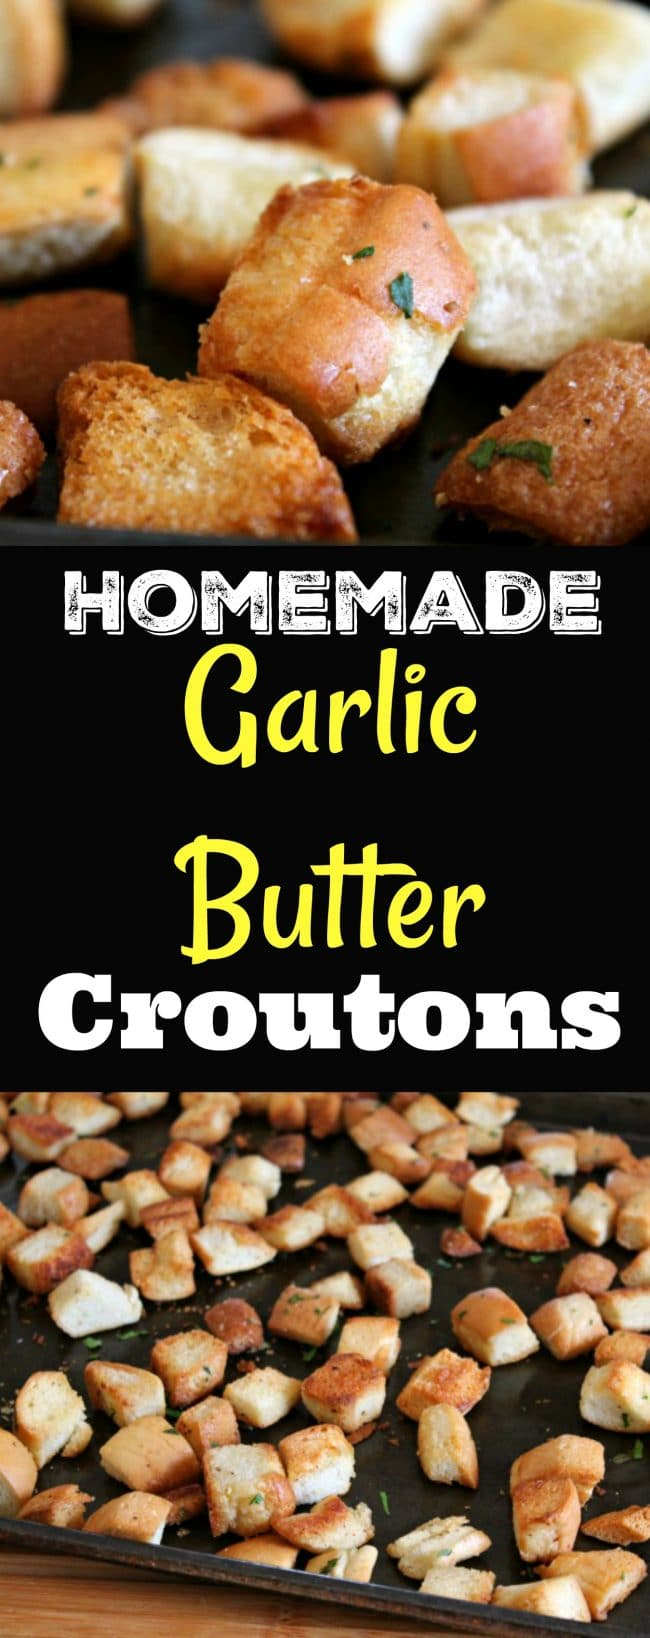 Homemade Garlic Butter Croutons made easy from leftover bread by foodyschmoodyblog.com